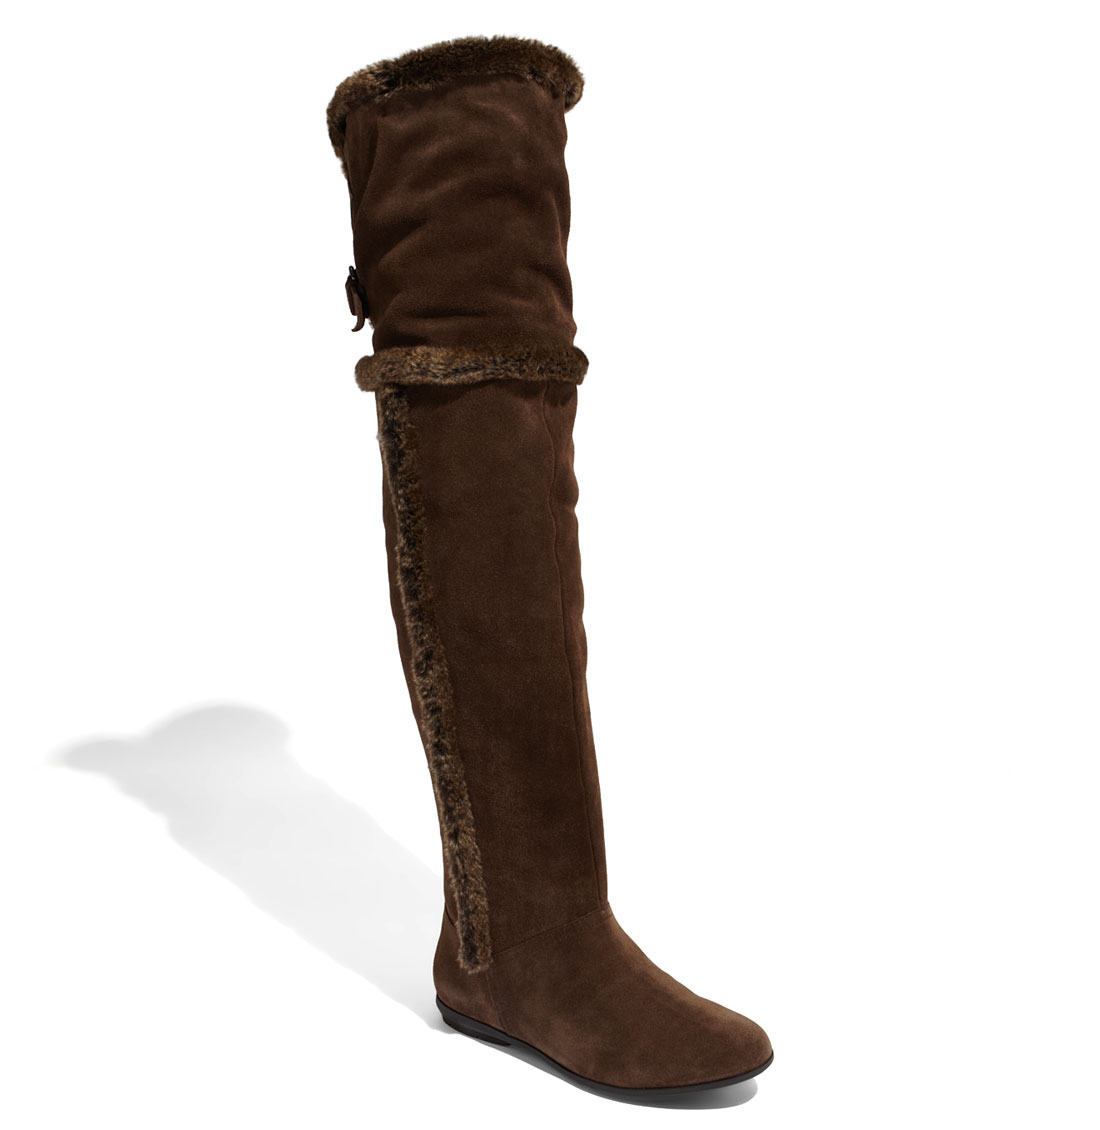 boots report Find great deals on ebay for womens report boots shop with confidence.